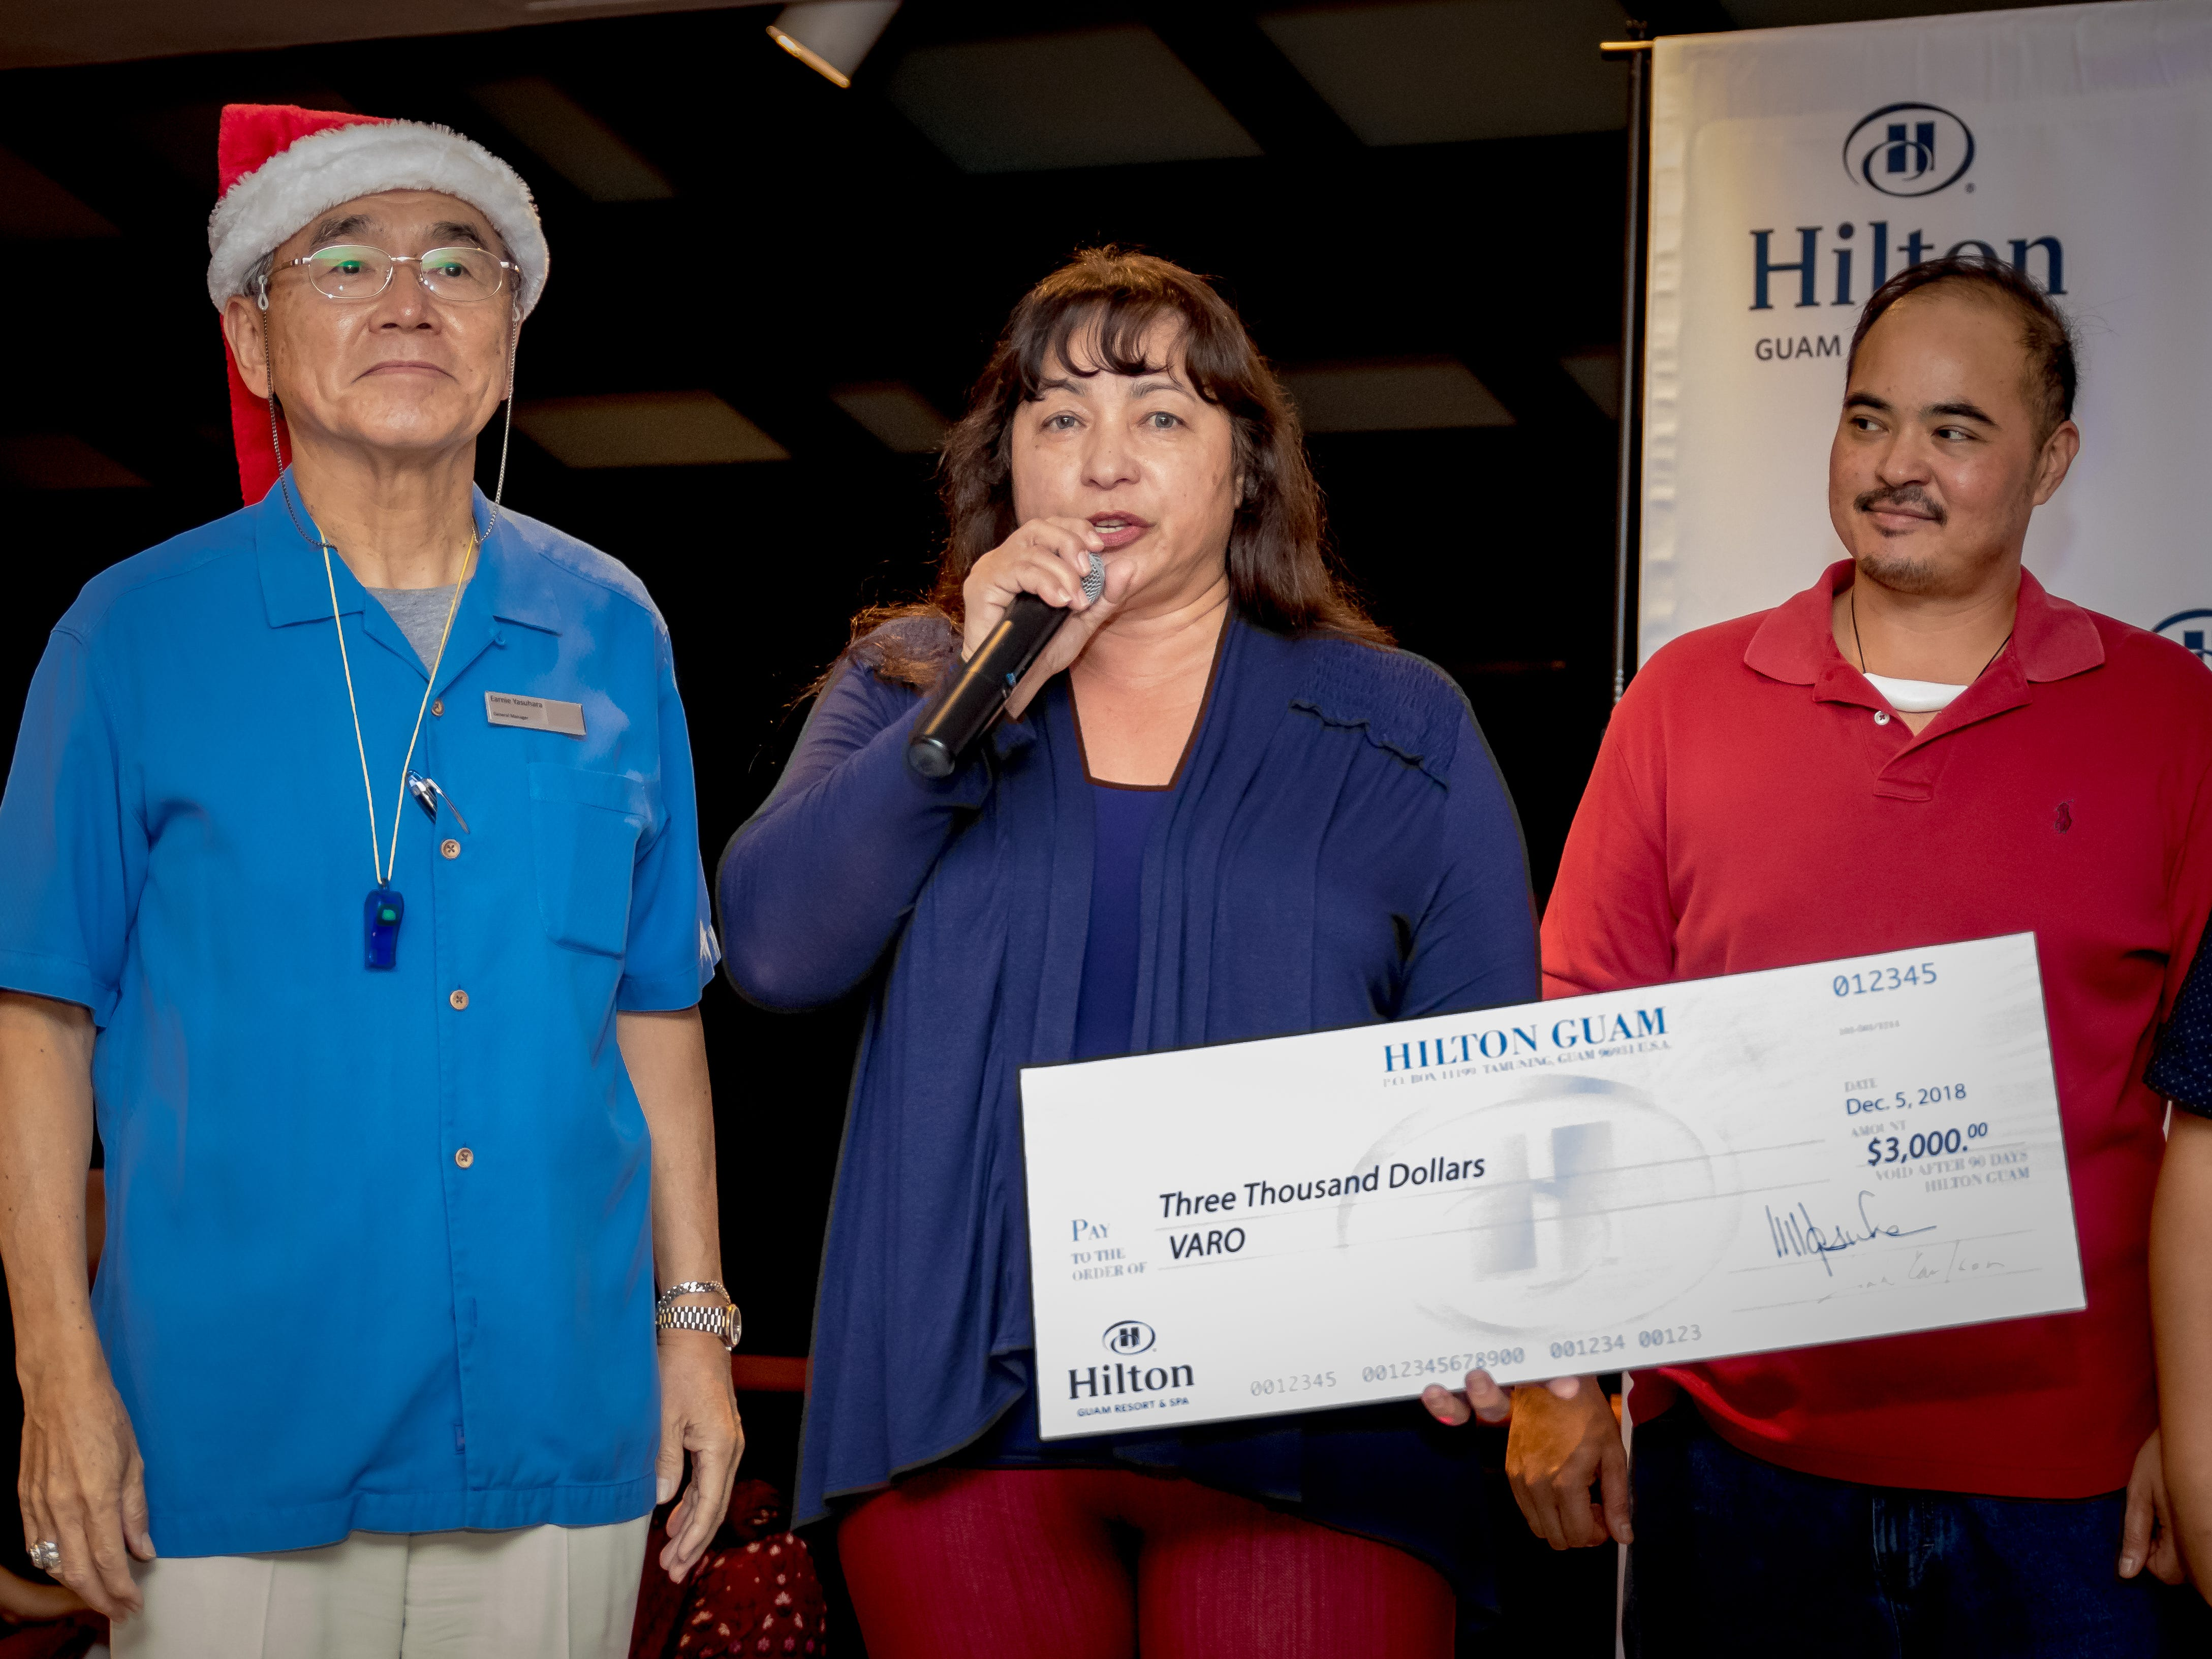 Hilton Guam Resort and Spa presents a check to Victim Advocates Reaching Out during the launching of Holiday Train display at the Hilton Guam Resort and Spa on Dec. 5.